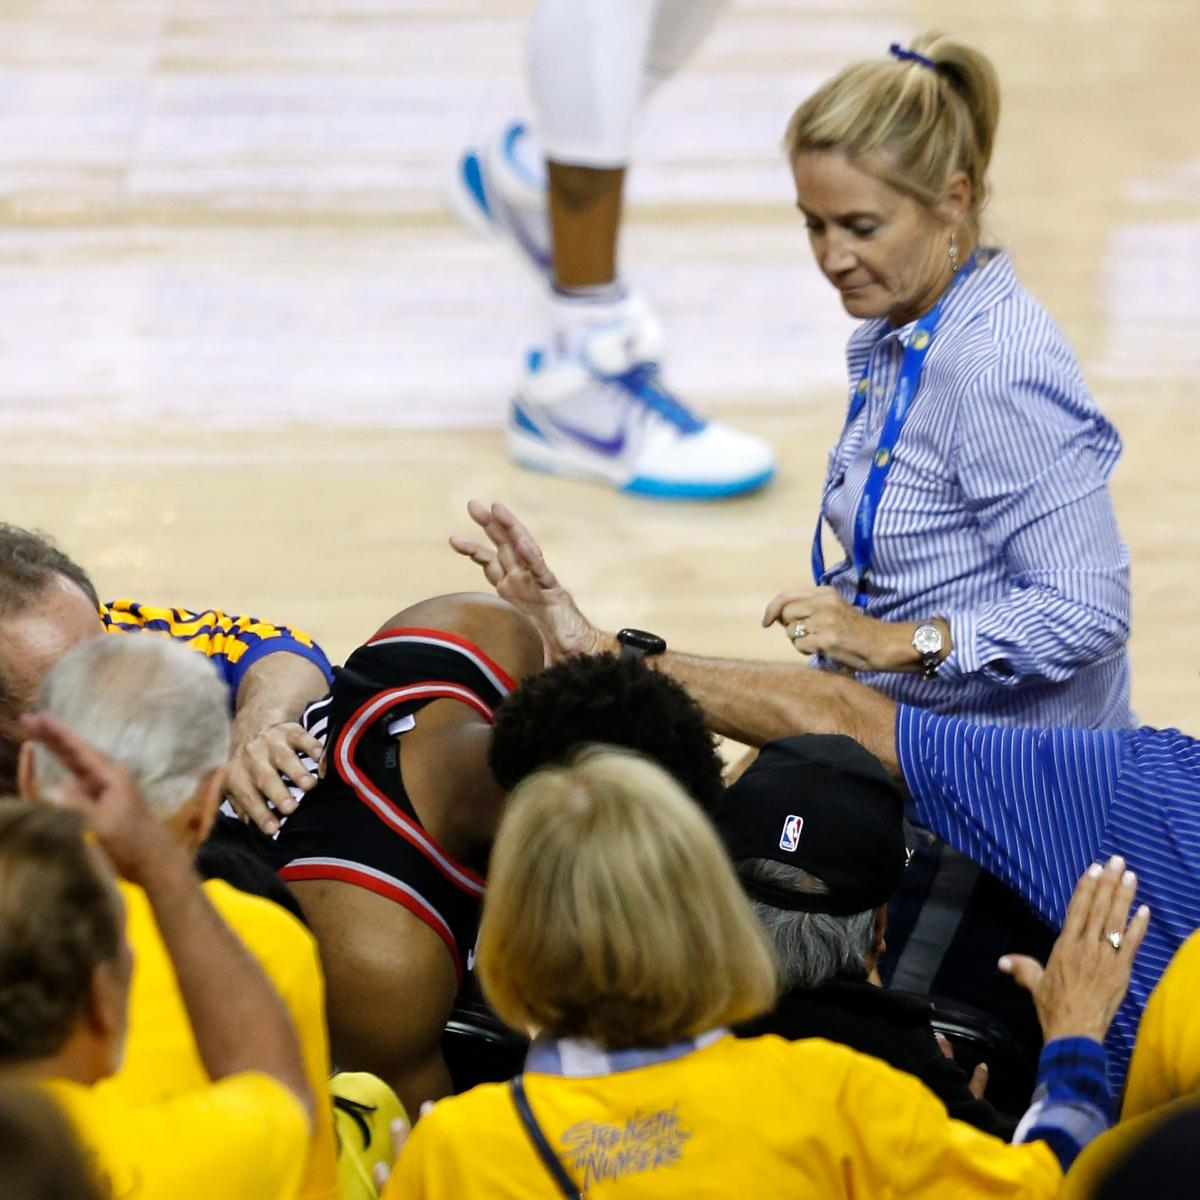 Warriors Into The Wild Ending: Kyle Lowry: 'No Place' For Fan Who Shoved Him During NBA